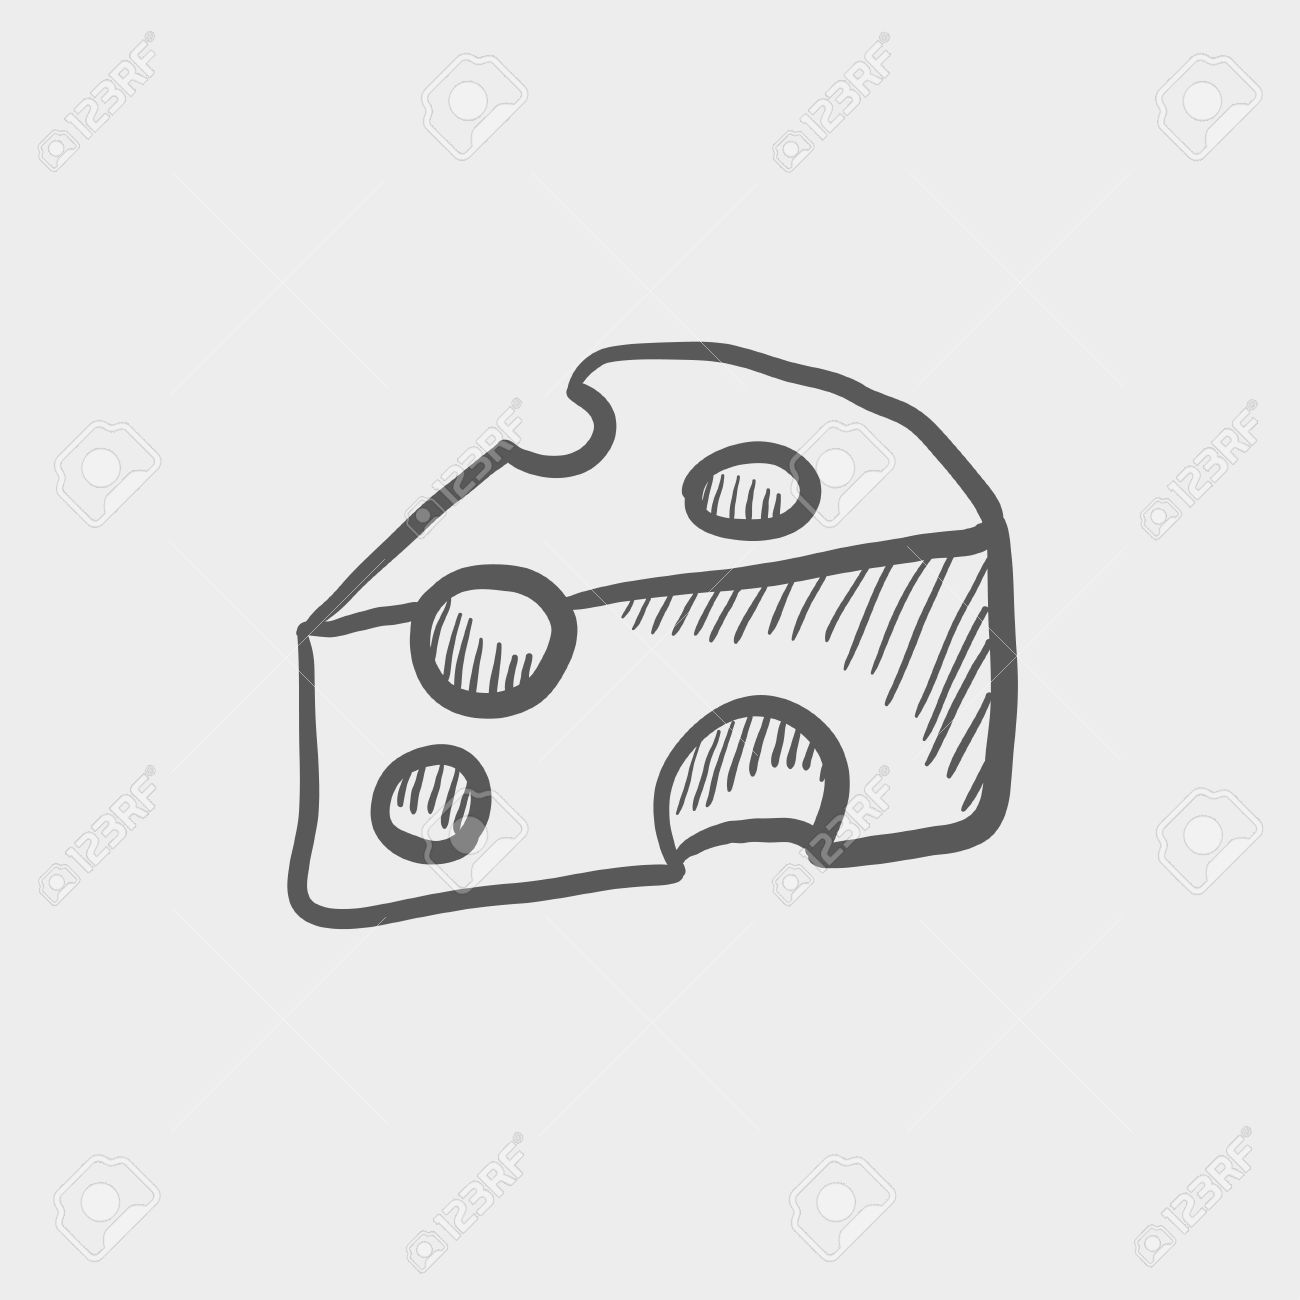 Sliced of cheese sketch icon for web and mobile hand drawn vector dark grey icon